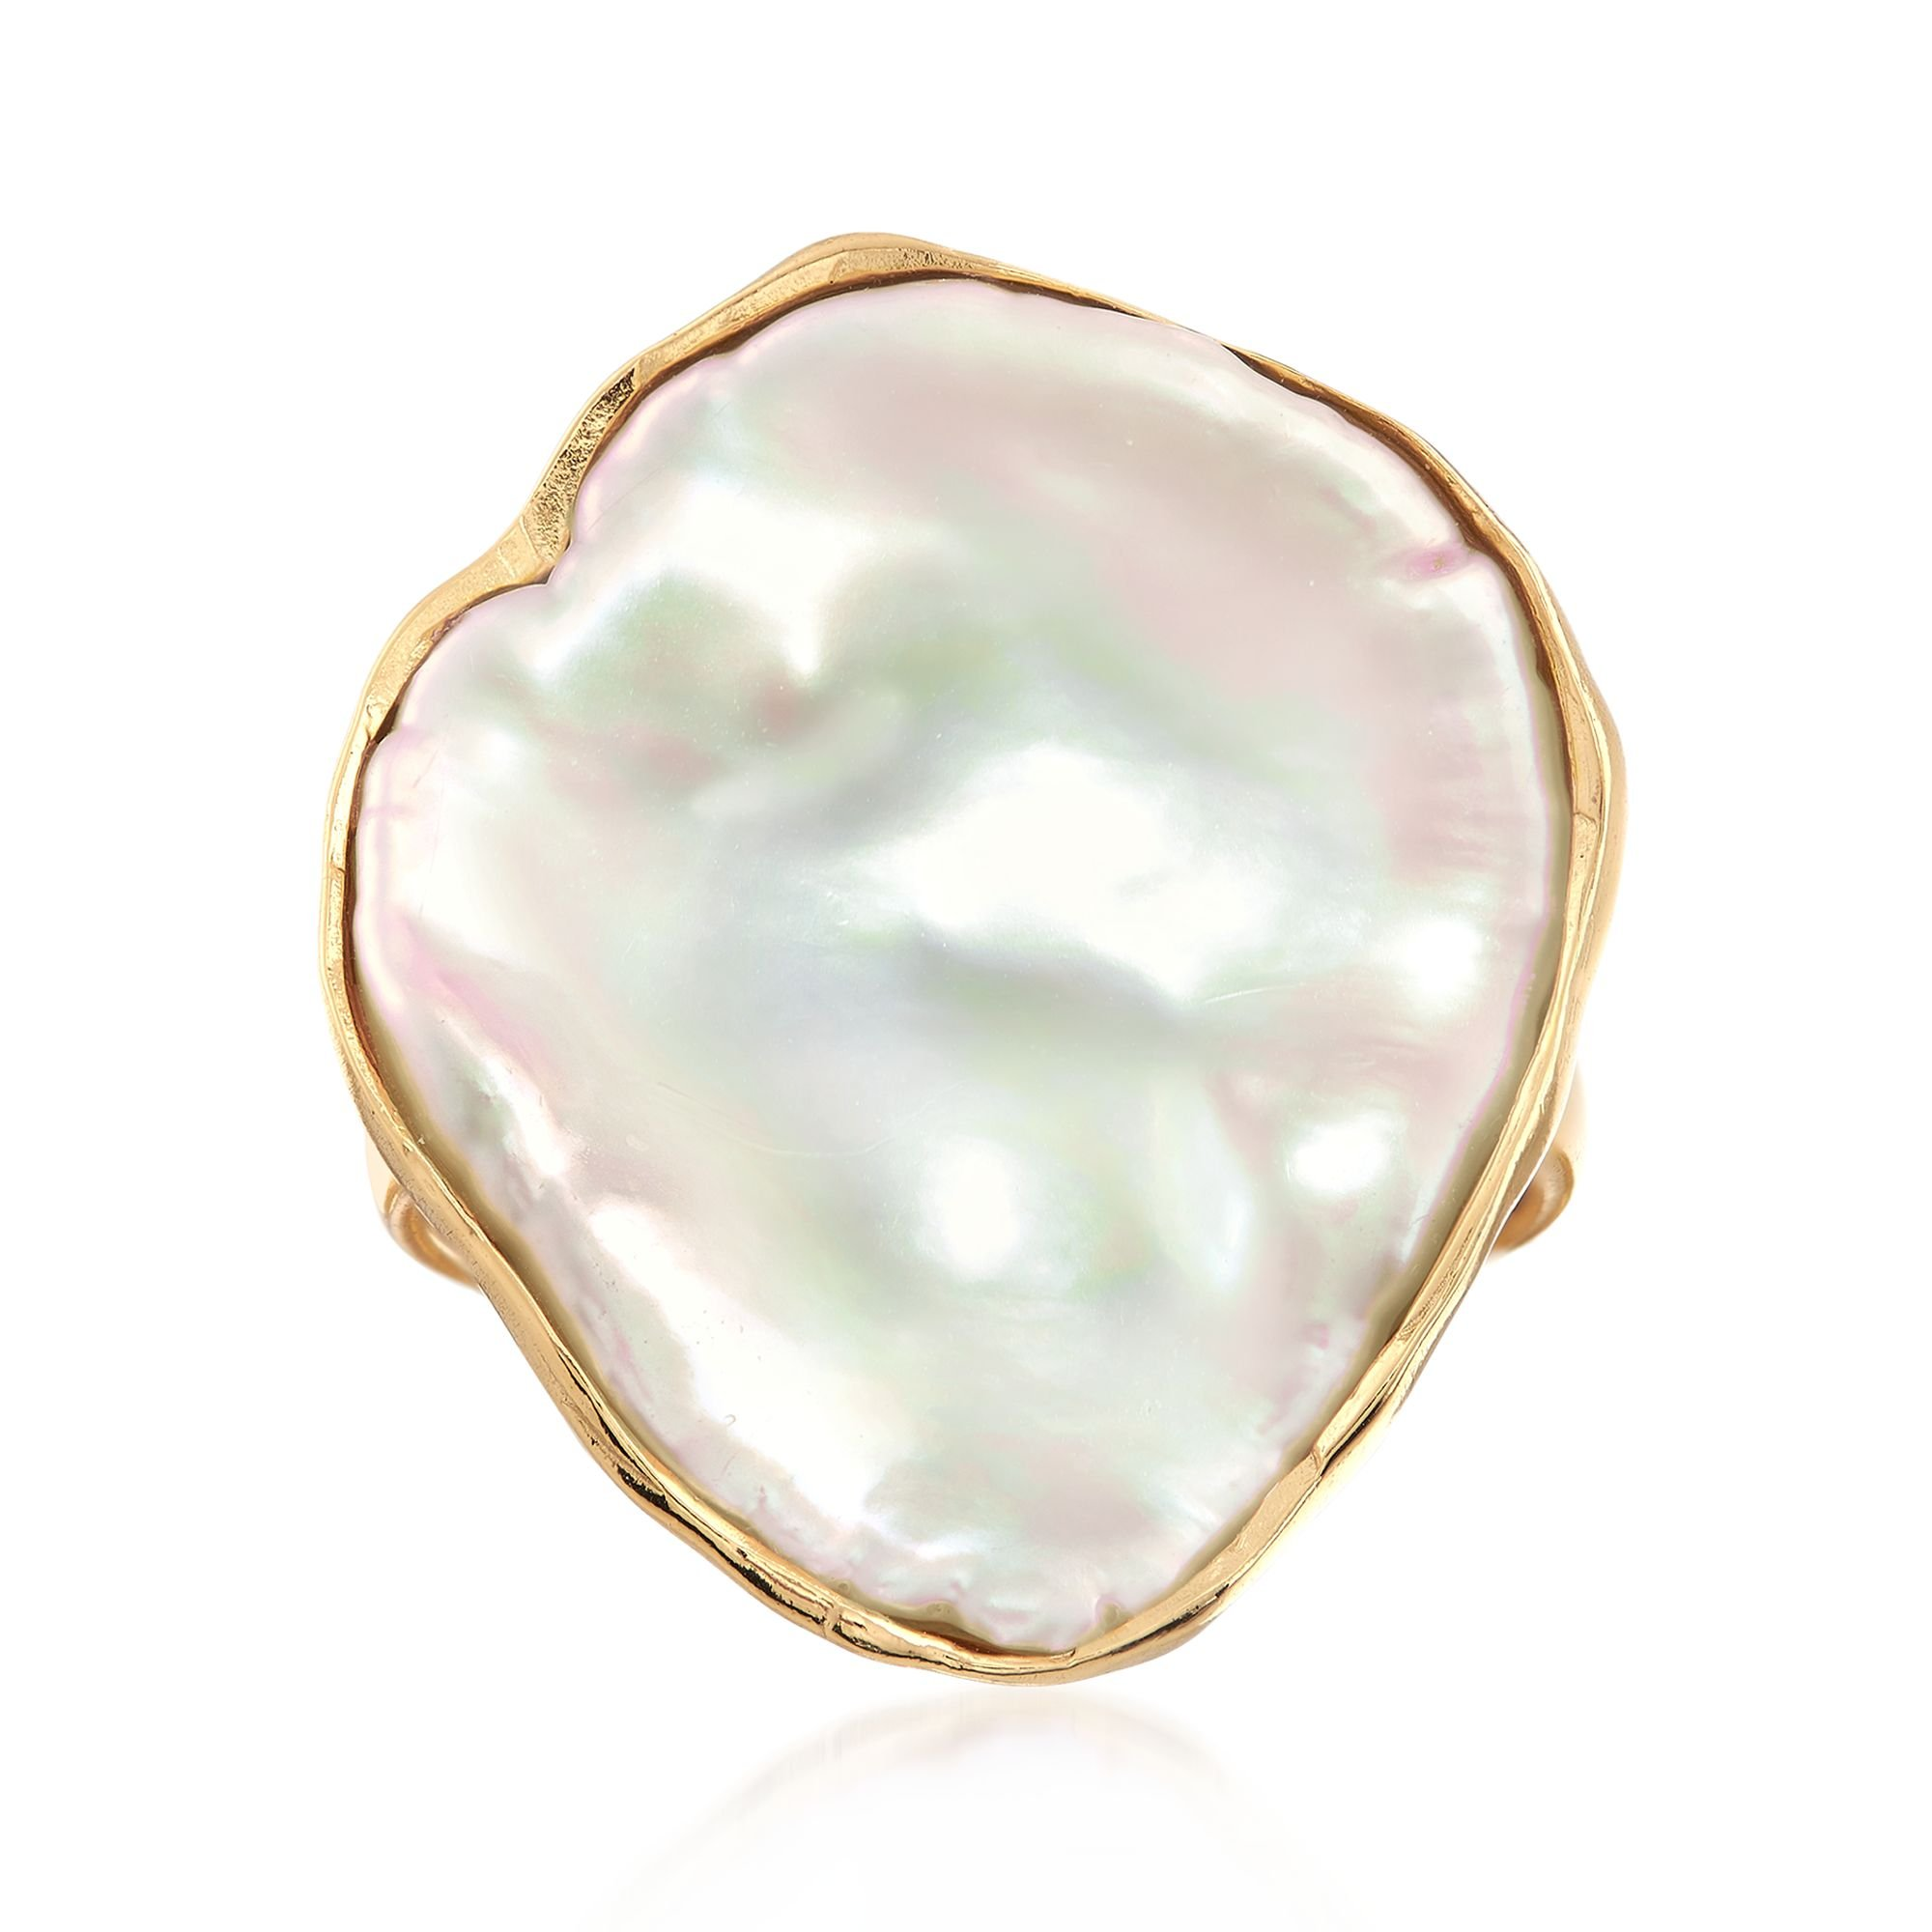 Ross-Simons Cultured Baroque Keshi Pearl Free-Form Ring in 18kt Gold Over Sterling